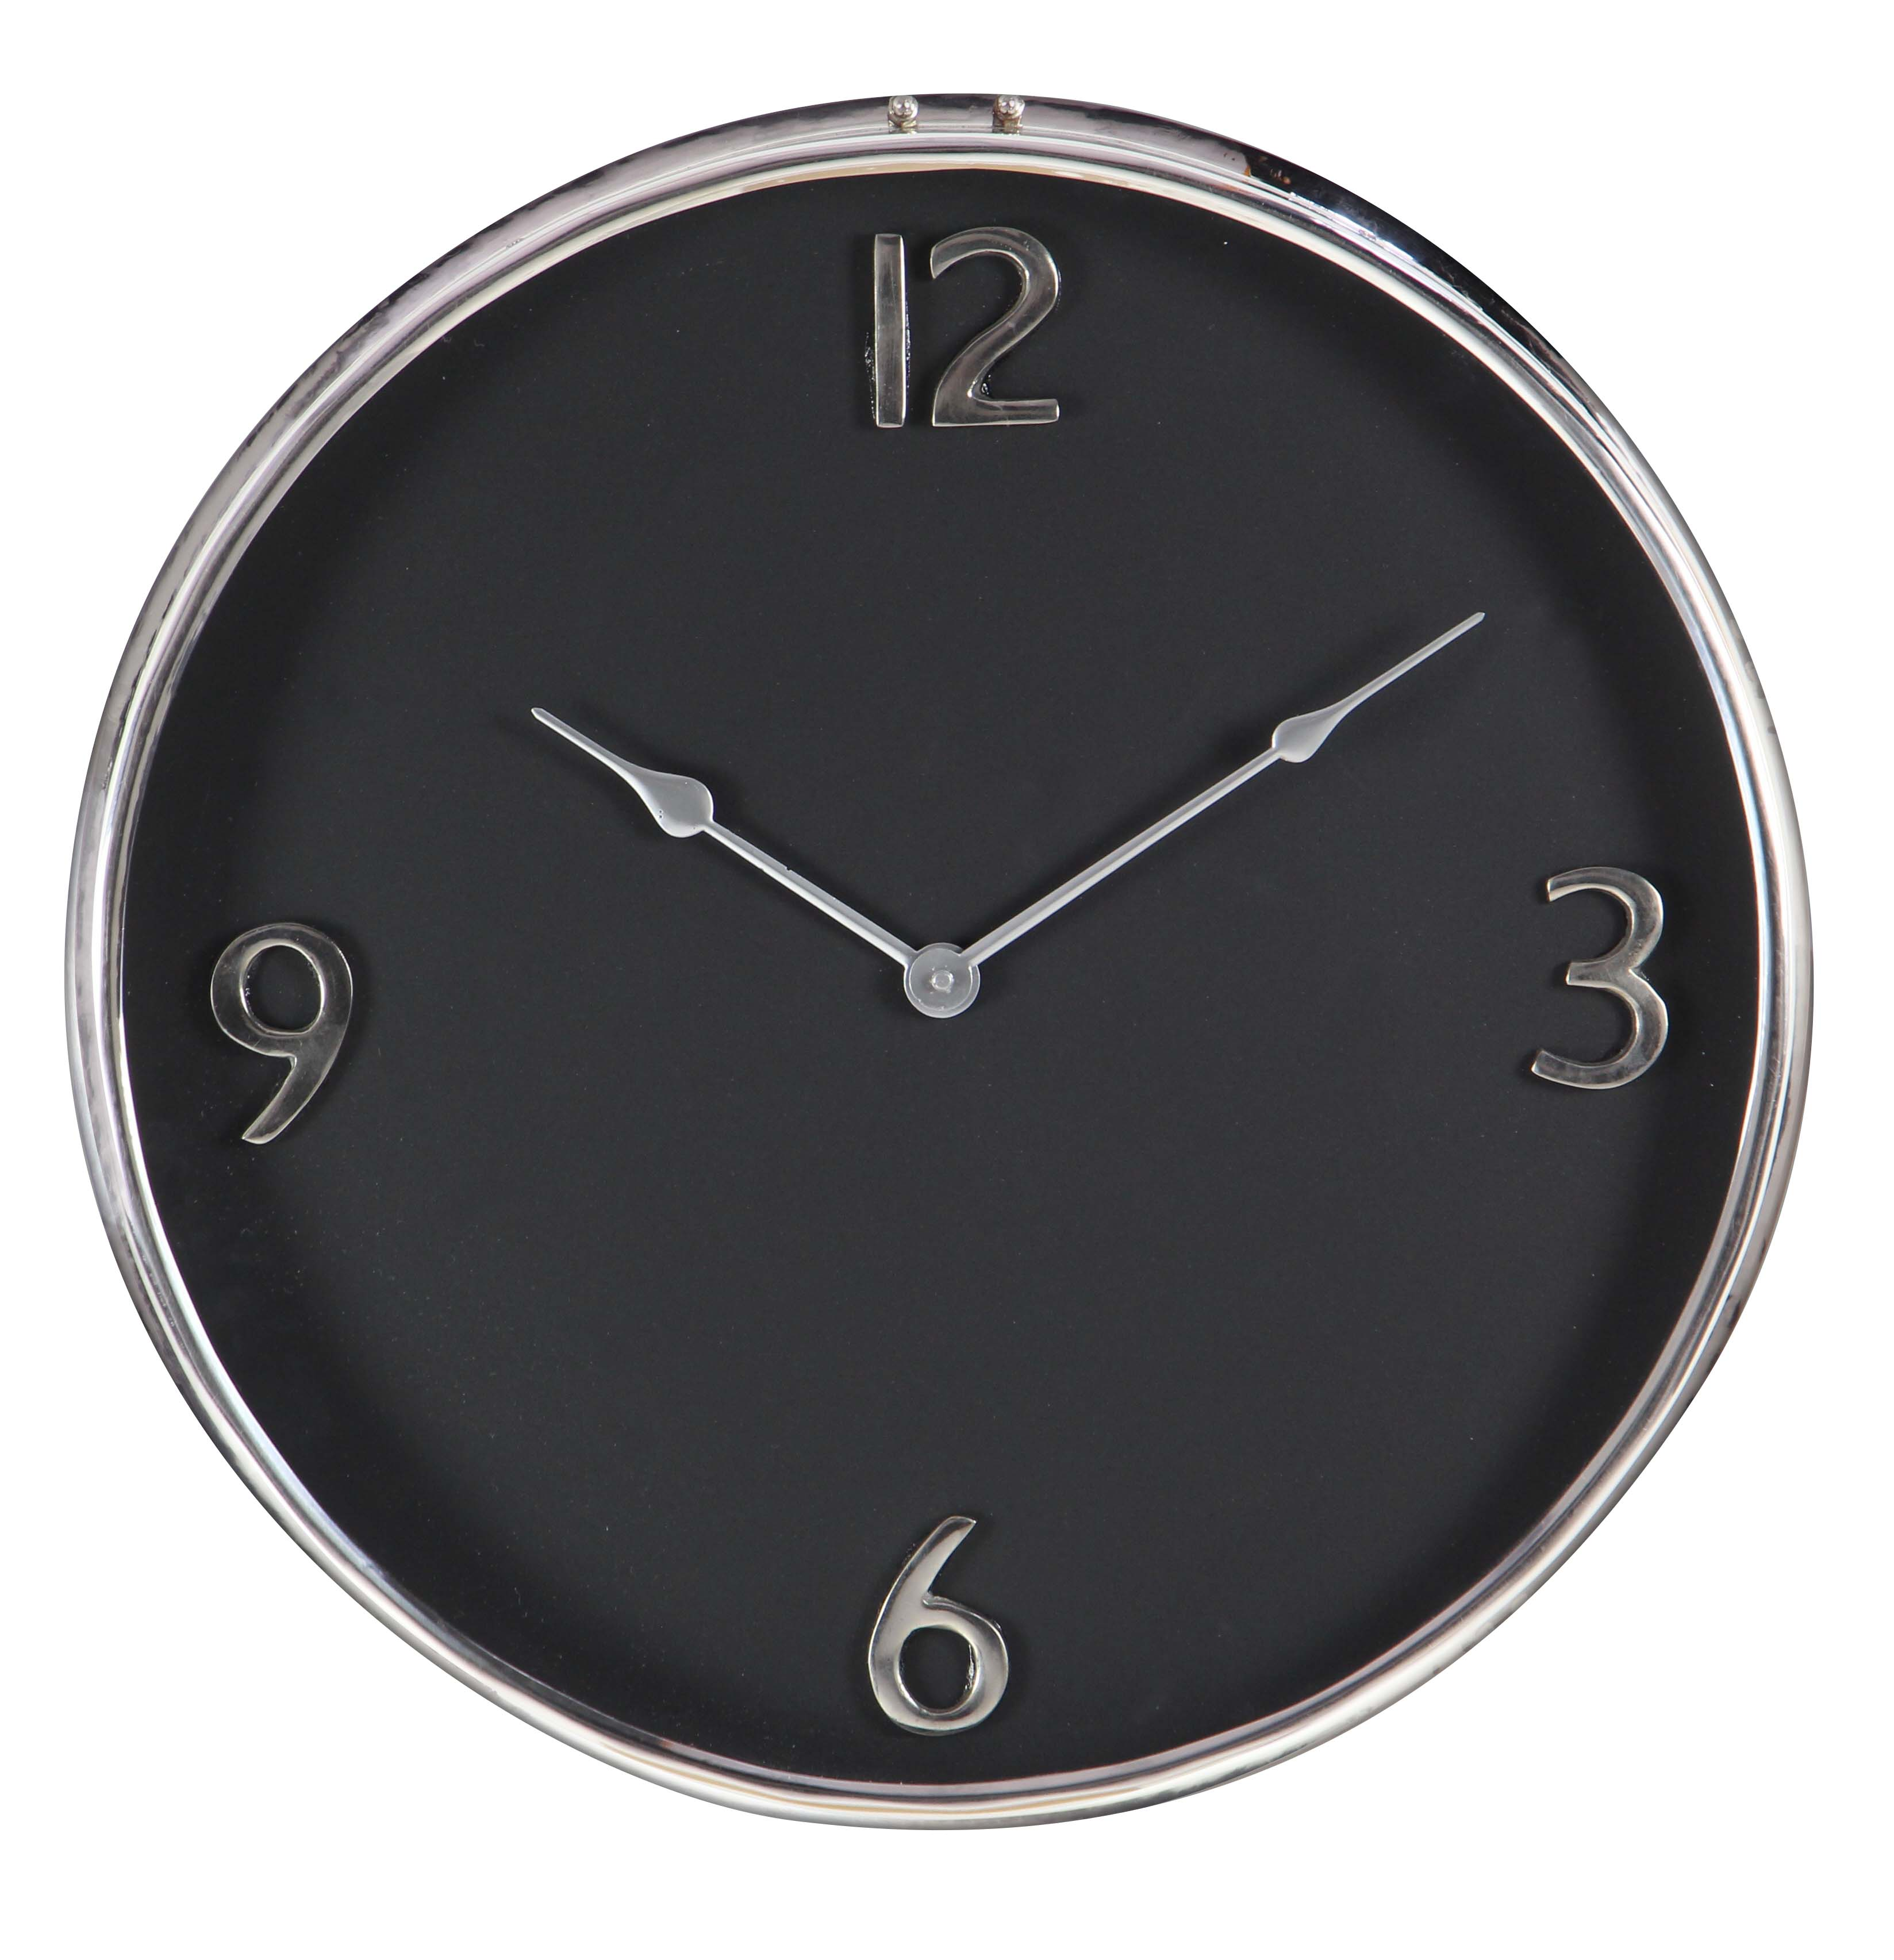 Decmode Contemporary 18 Inch Black Stainless Steel And Aluminum Round Wall Clock by DecMode